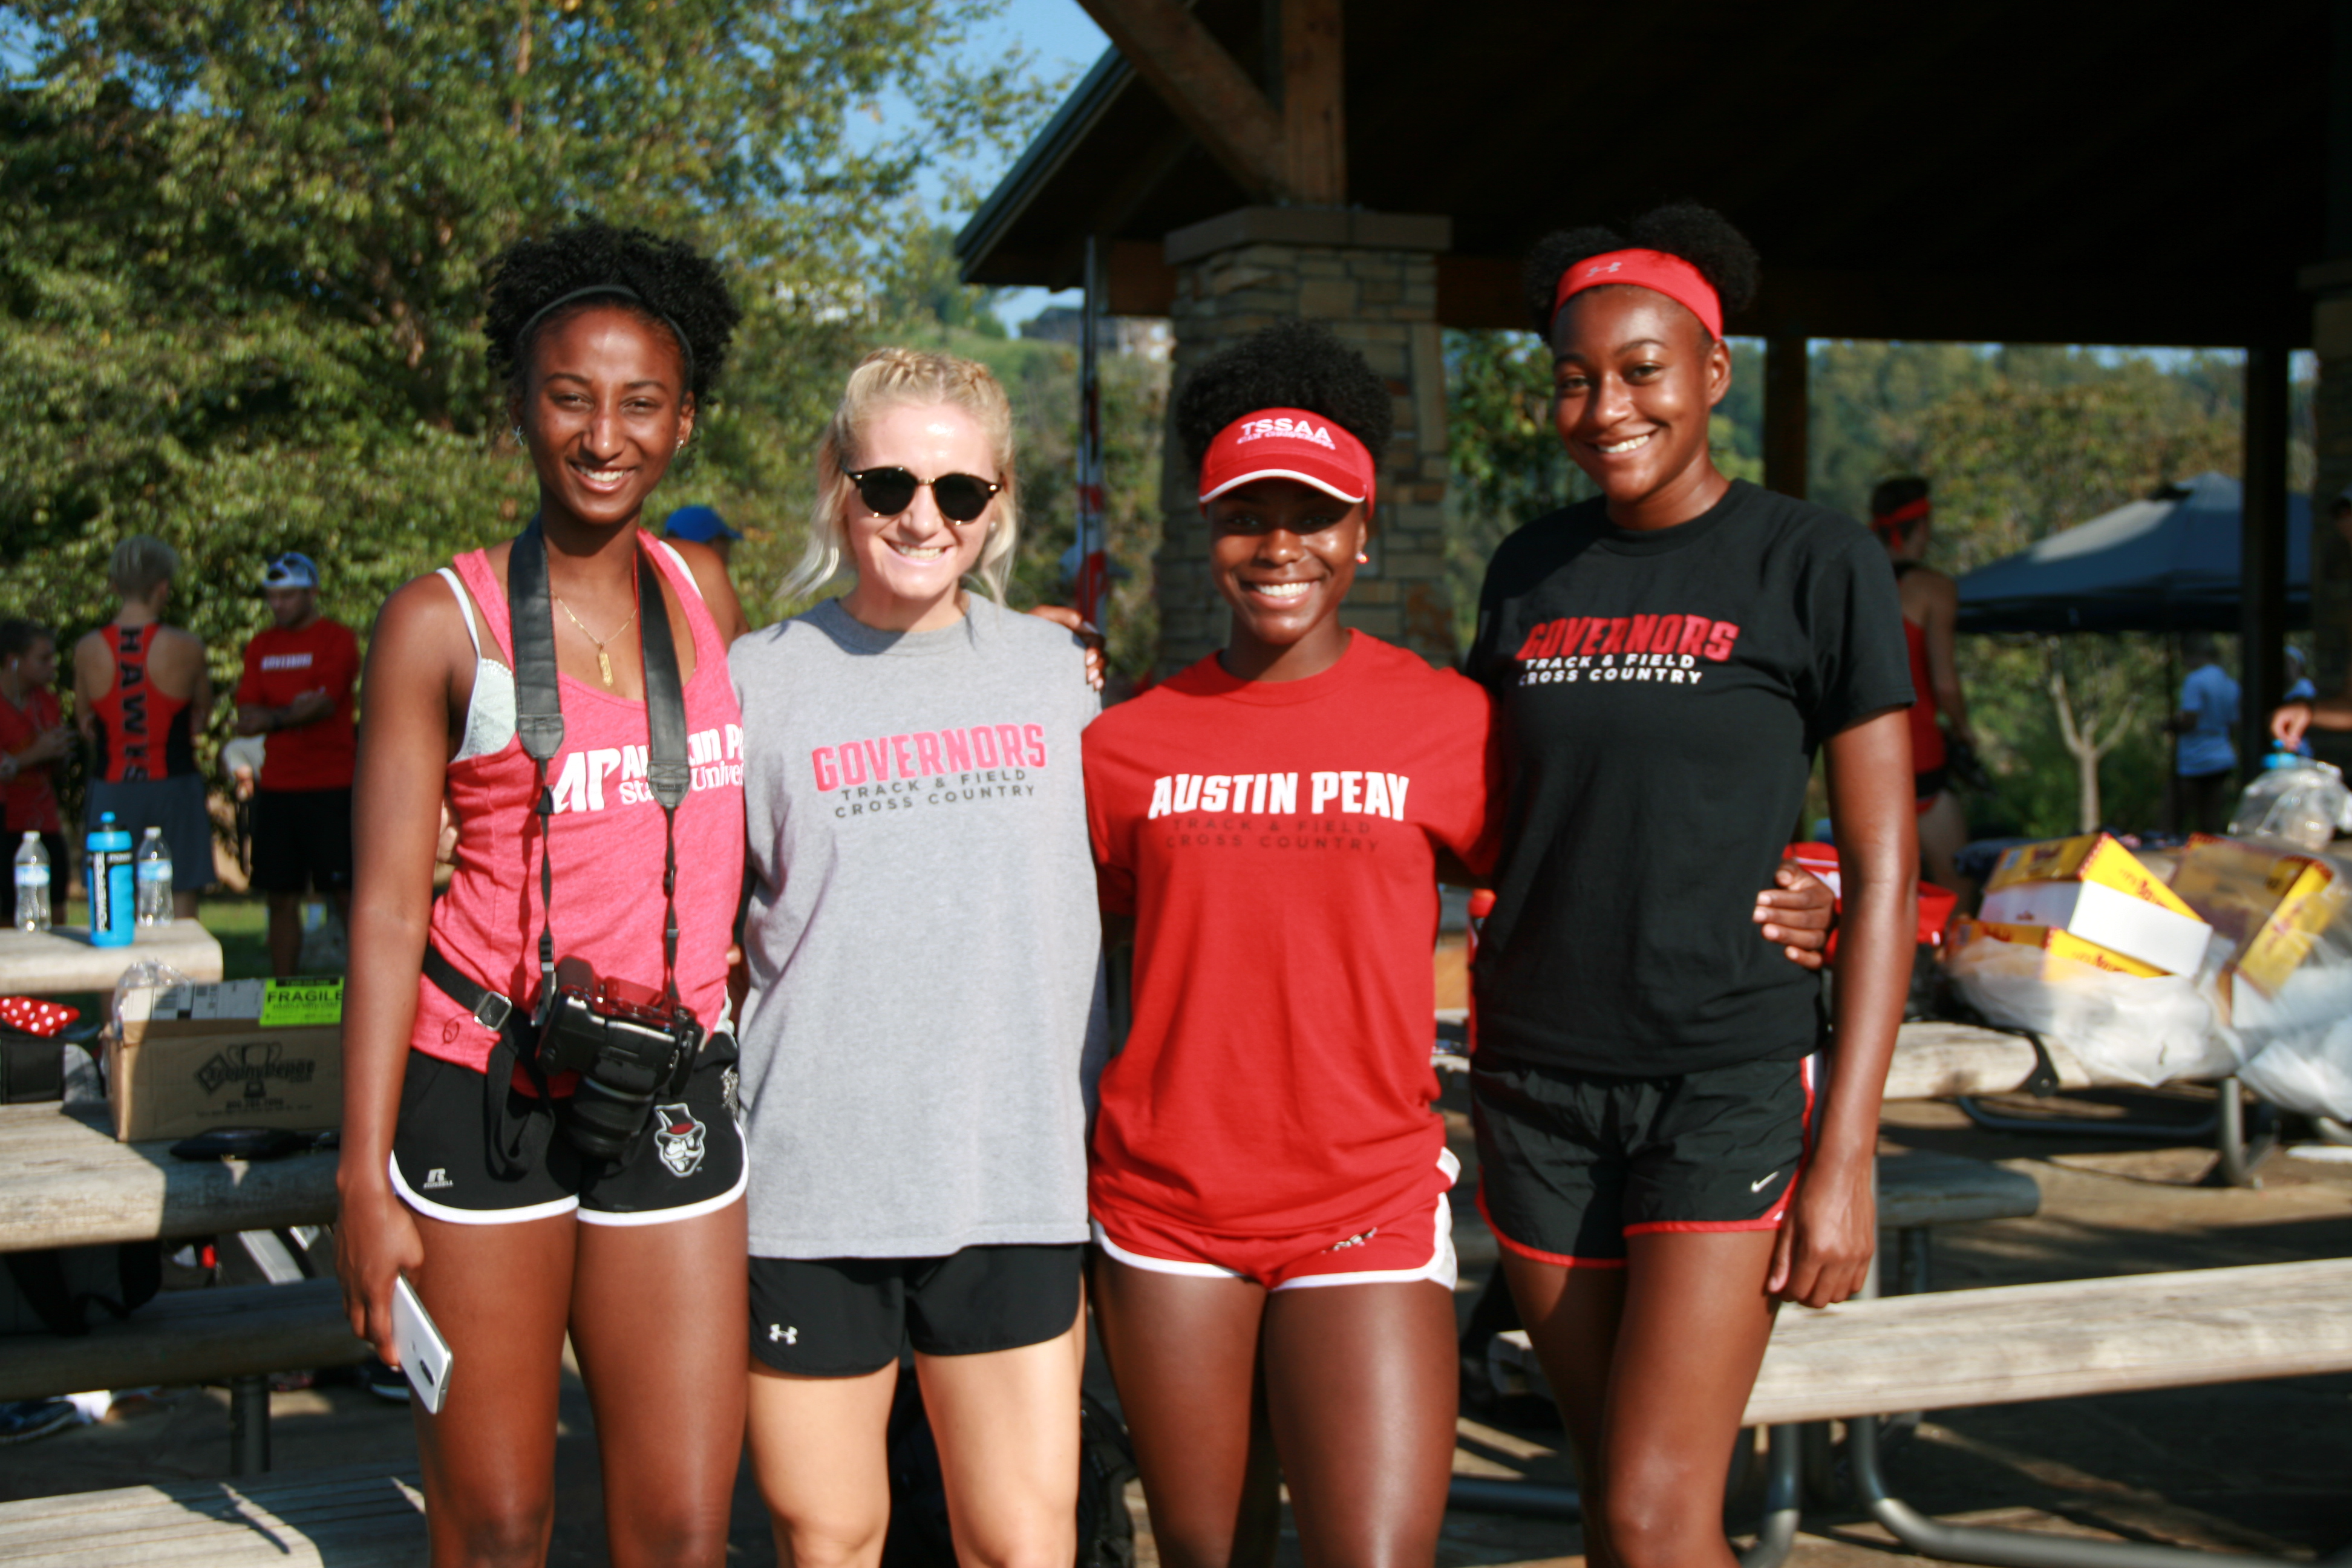 Athletes pose during the 2017 APSU Cross Country Invitational in Clarksville. THE ALL STATE ARCHIVES